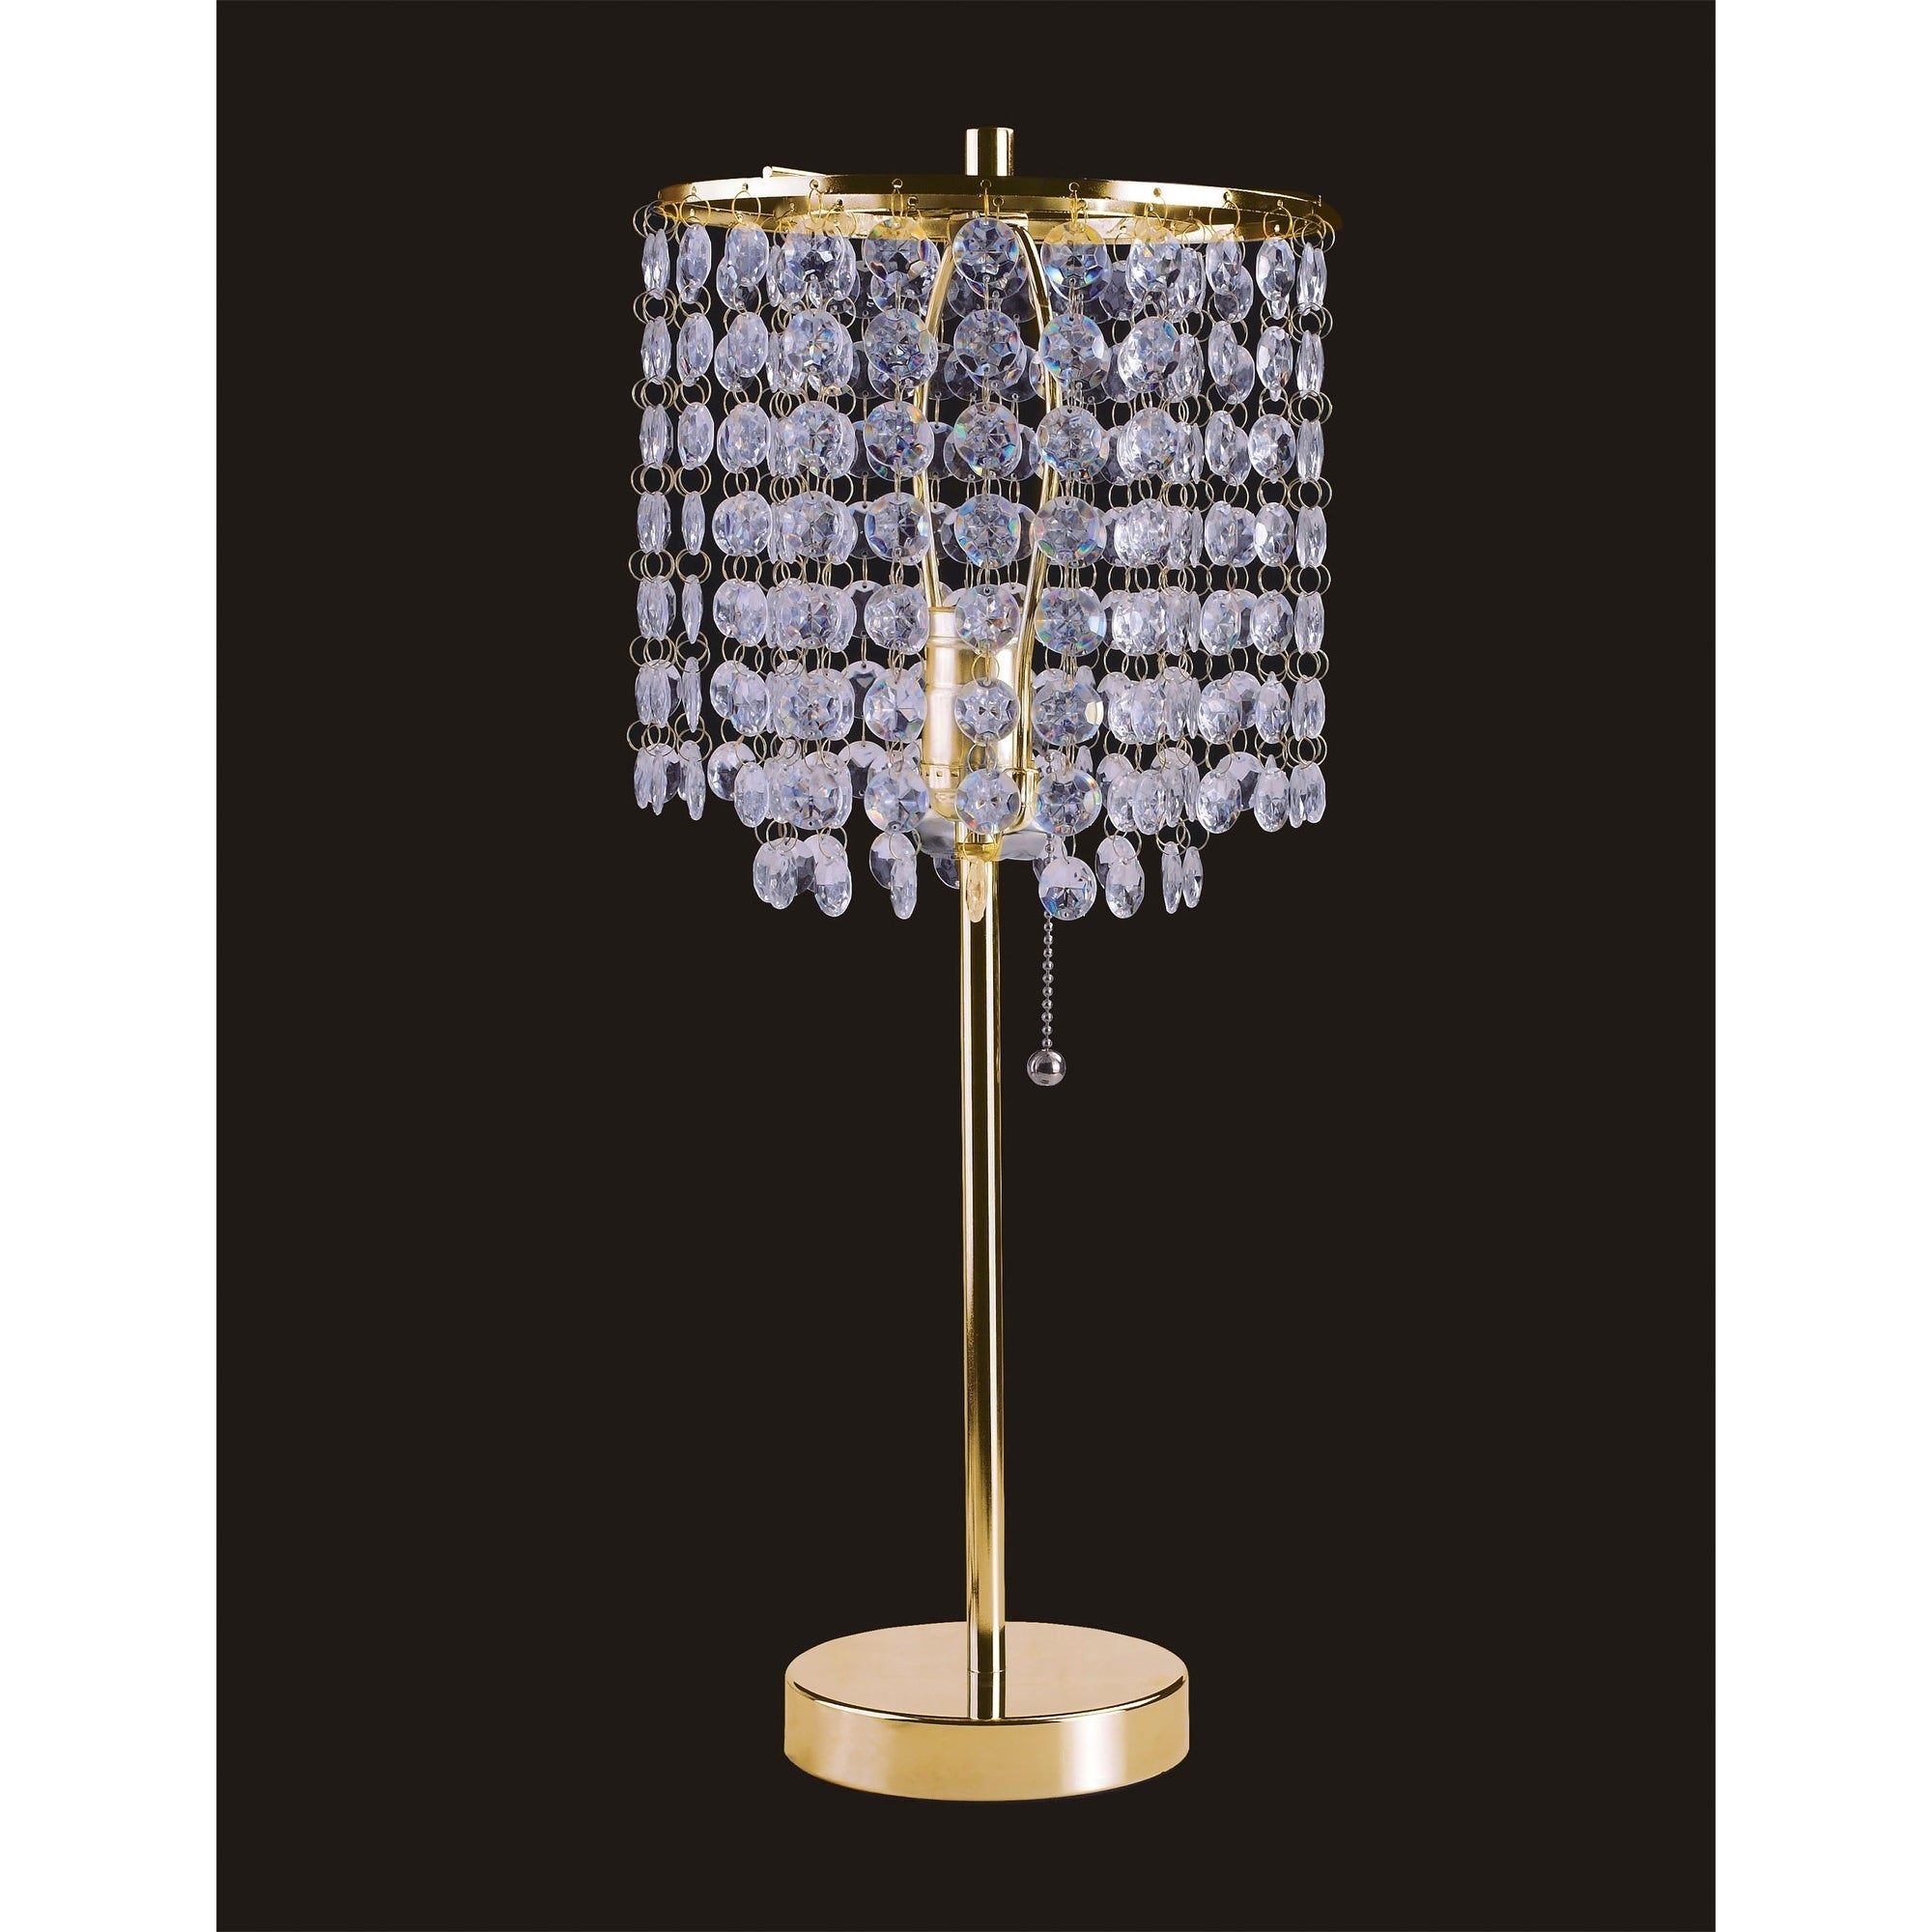 Ore International Deco Glam Stylish Gold Crystal Beaded Table Lamp Overstock 17488558